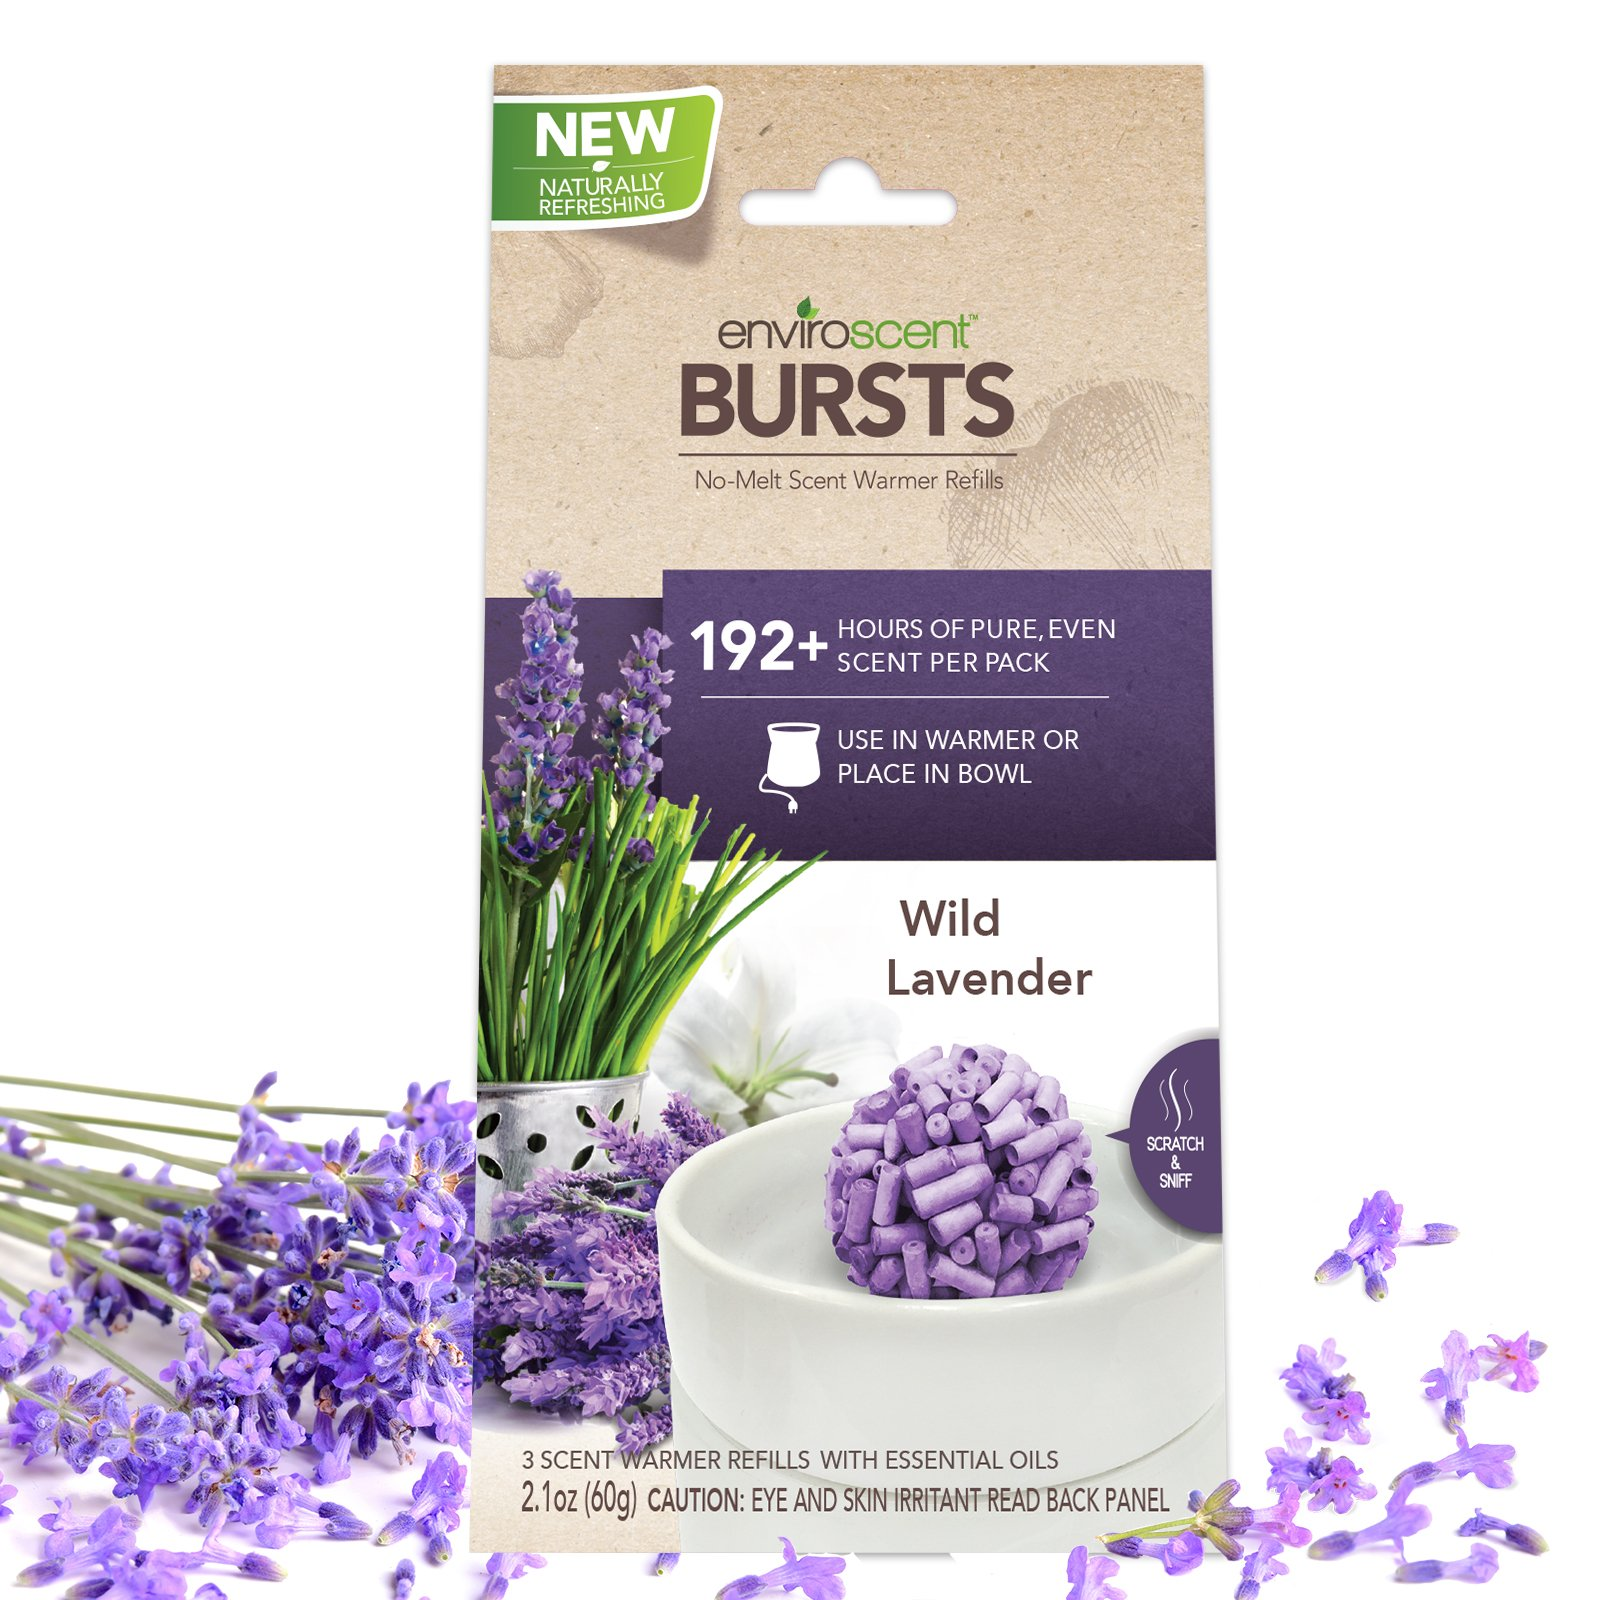 Enviroscent Bursts Aroma Diffusers, Wild Lavender Fragrance, Bag of 3